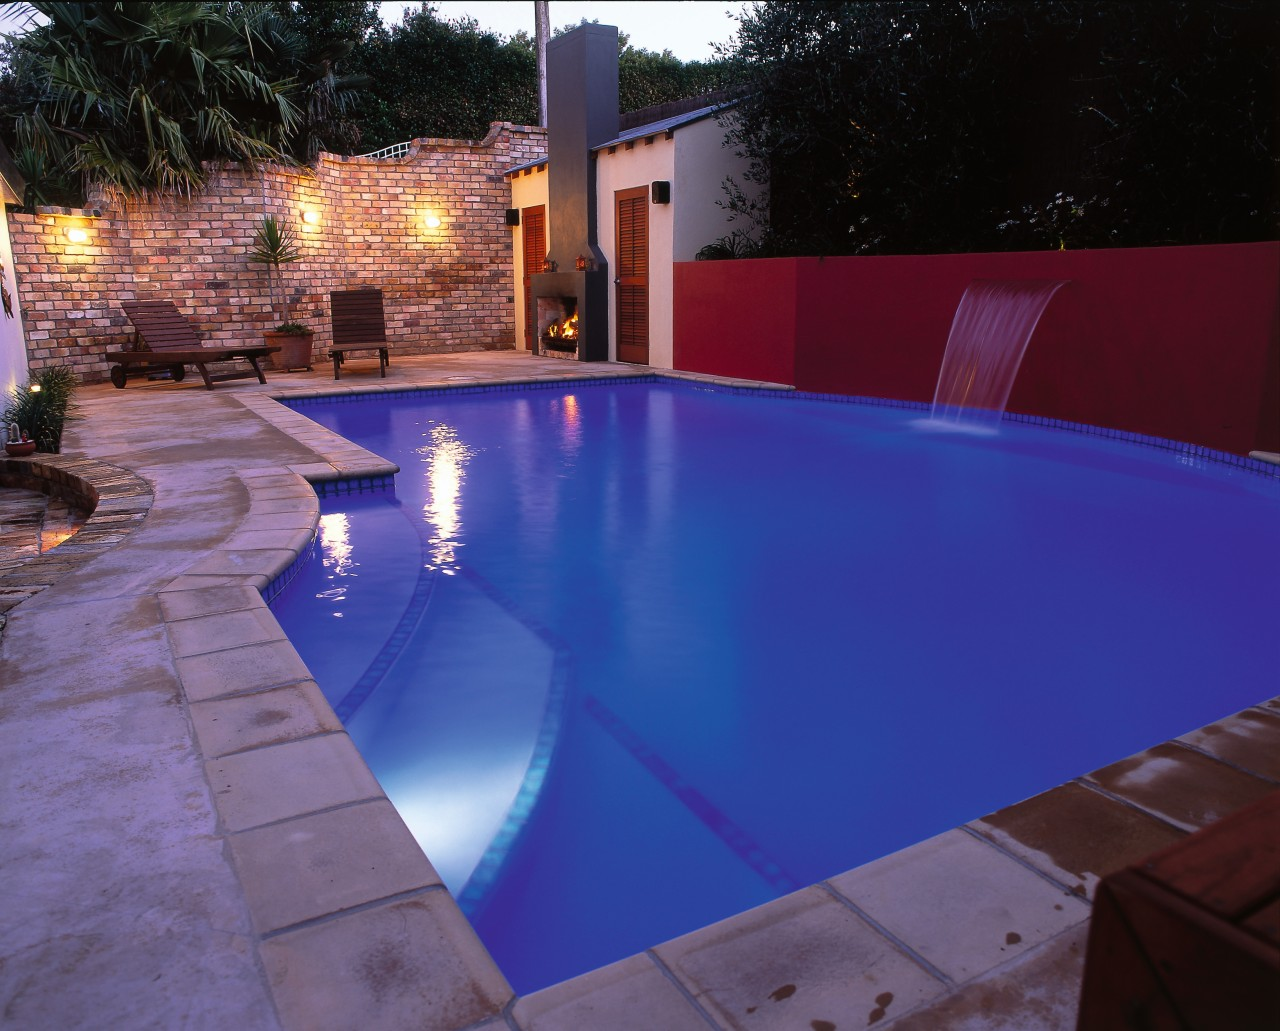 Broad view of the pool backyard, floor, leisure, light, lighting, property, real estate, reflection, swimming pool, water, water feature, blue